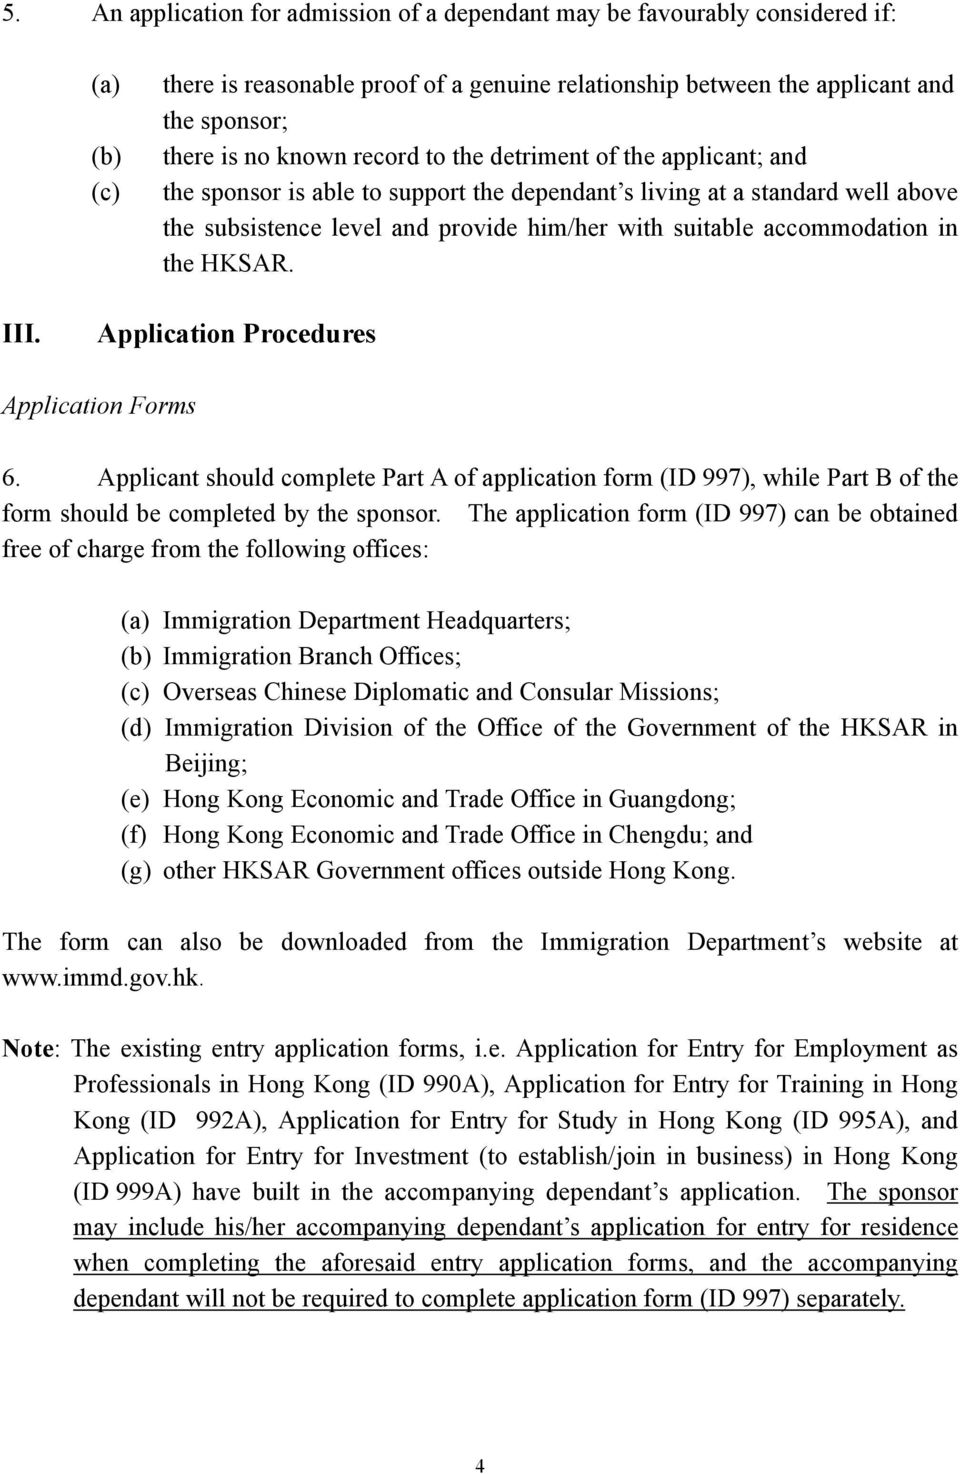 accommodation in the HKSAR. III. Application Procedures Application Forms 6. Applicant should complete Part A of application form (ID 997), while Part B of the form should be completed by the sponsor.